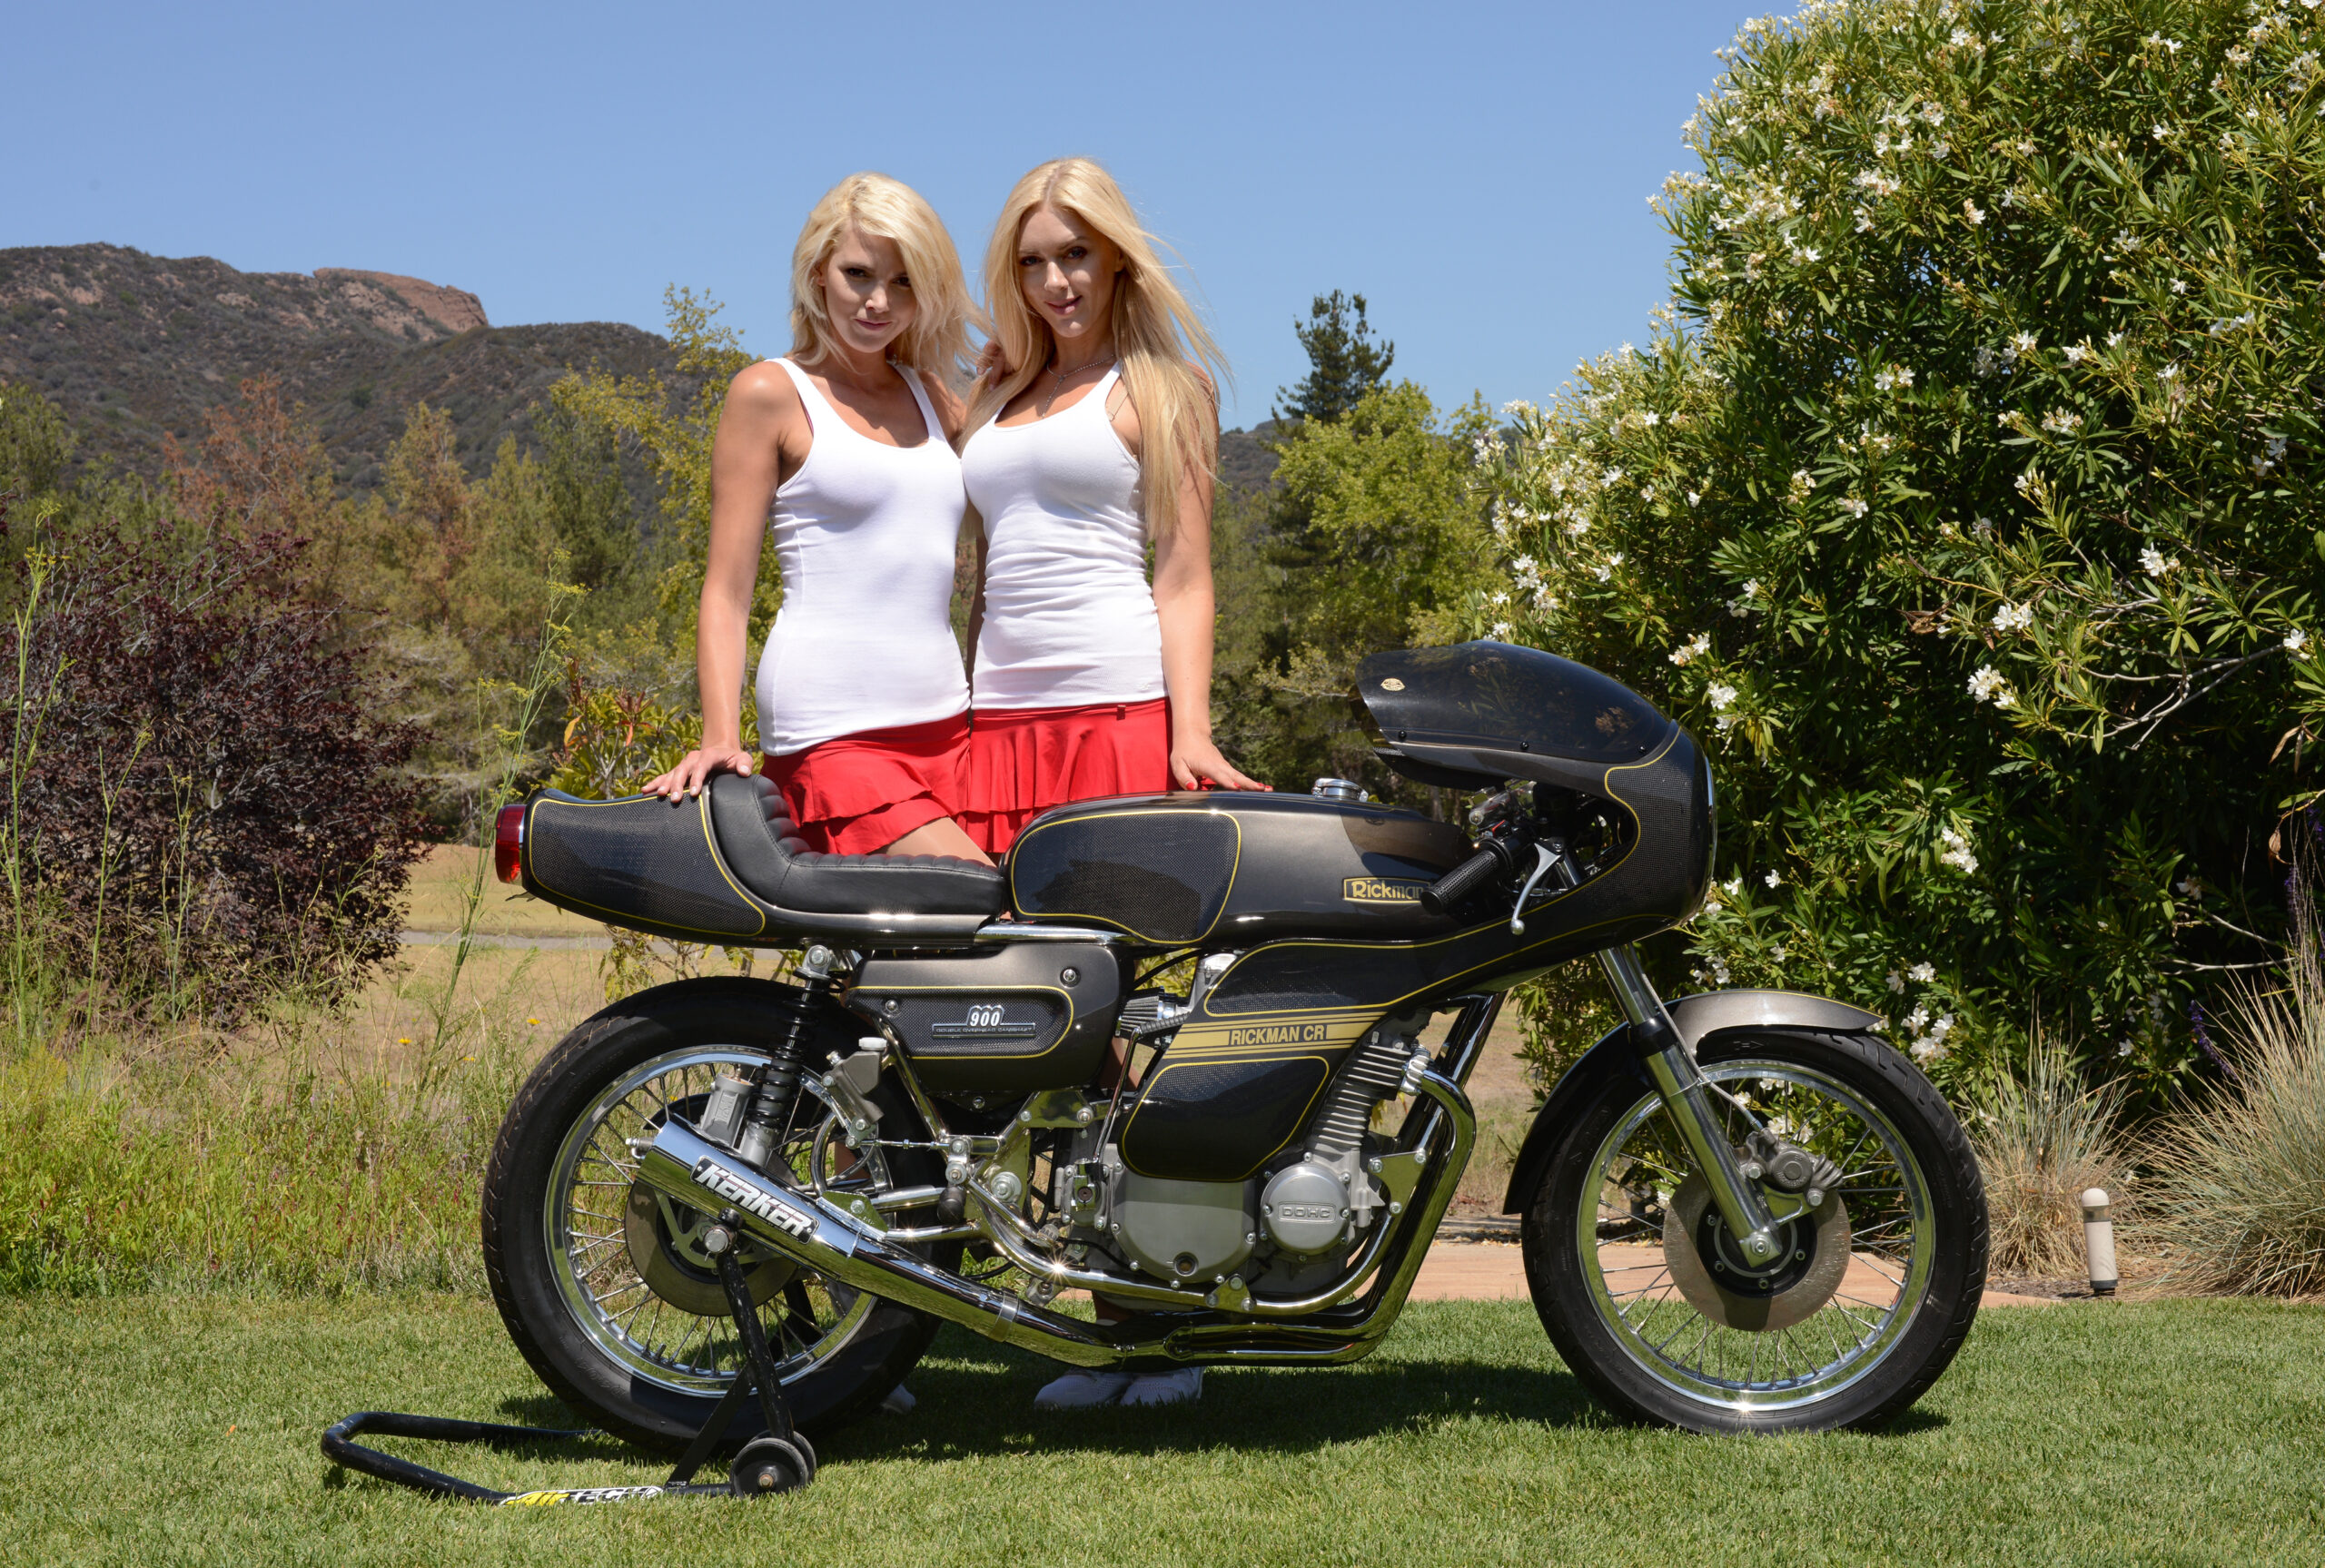 2014 La Calendar Motorcycle Show Concourse D' Elegance for Move All Events From One Calendar To Another